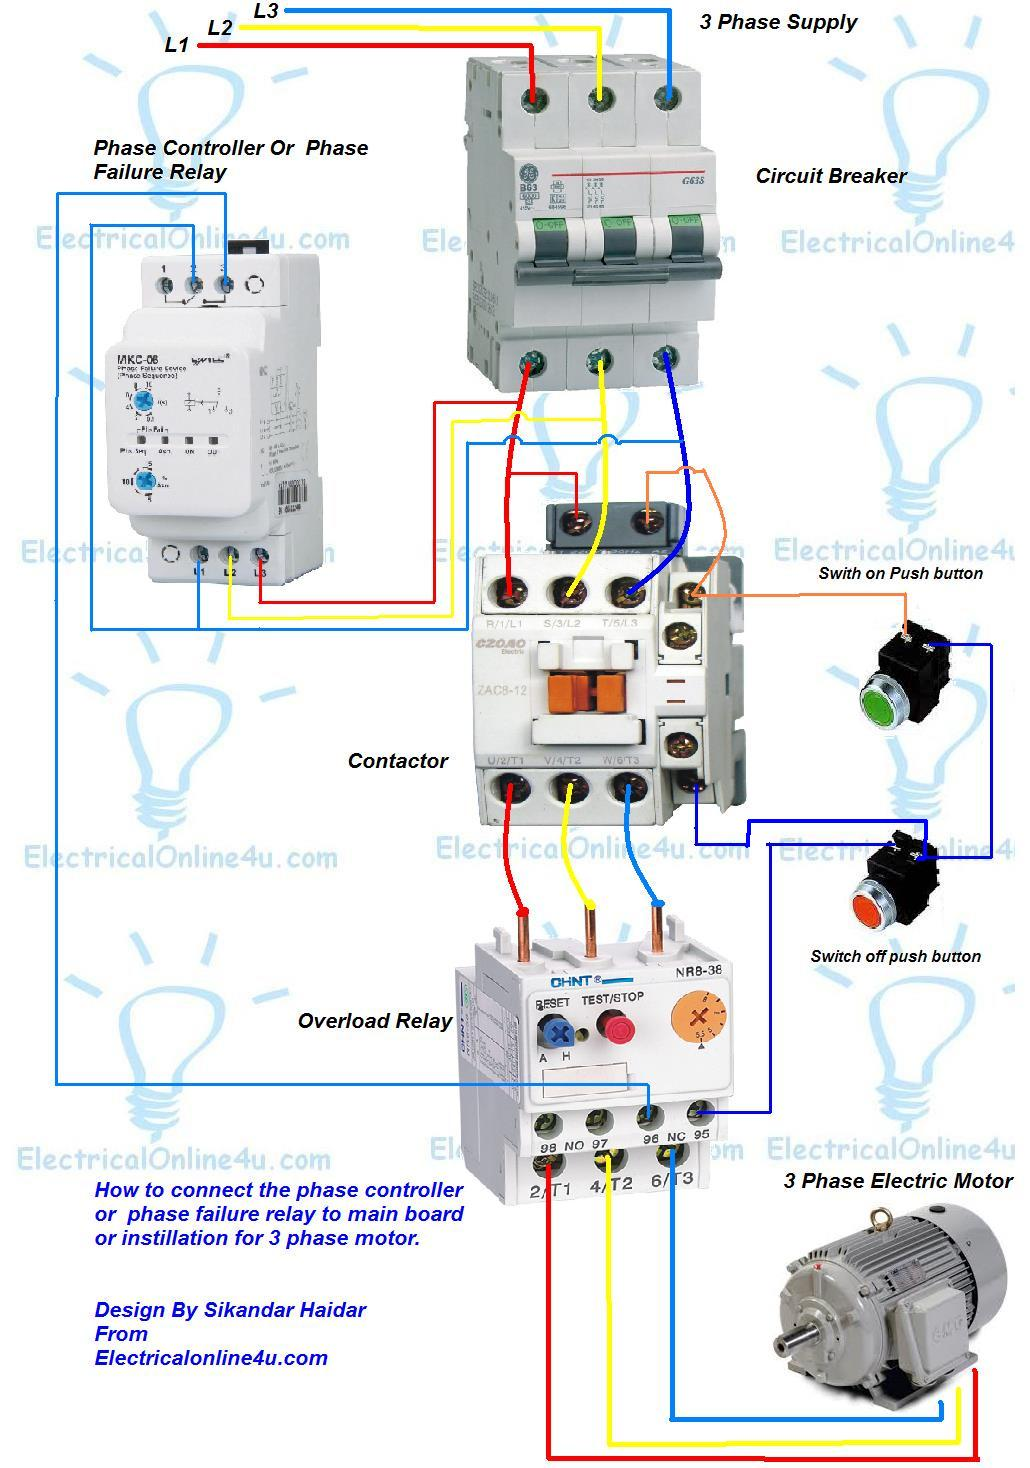 Electromechanical Relay Wiring Diagram : Phase controller wiring failure relay diagram